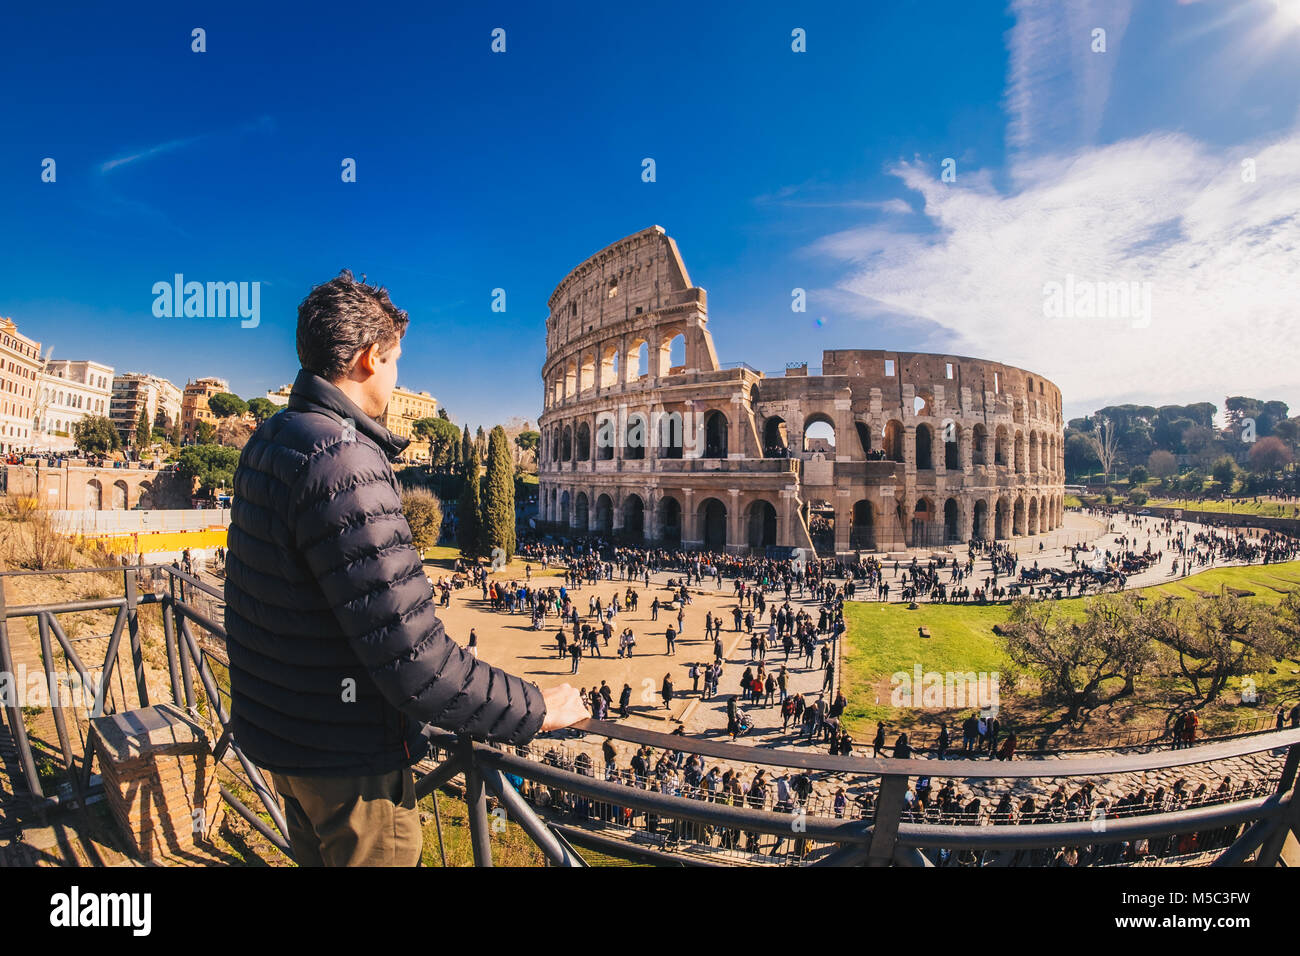 Male tourist enjyoing the view at the Colosseum in Rome, Italy - Stock Image